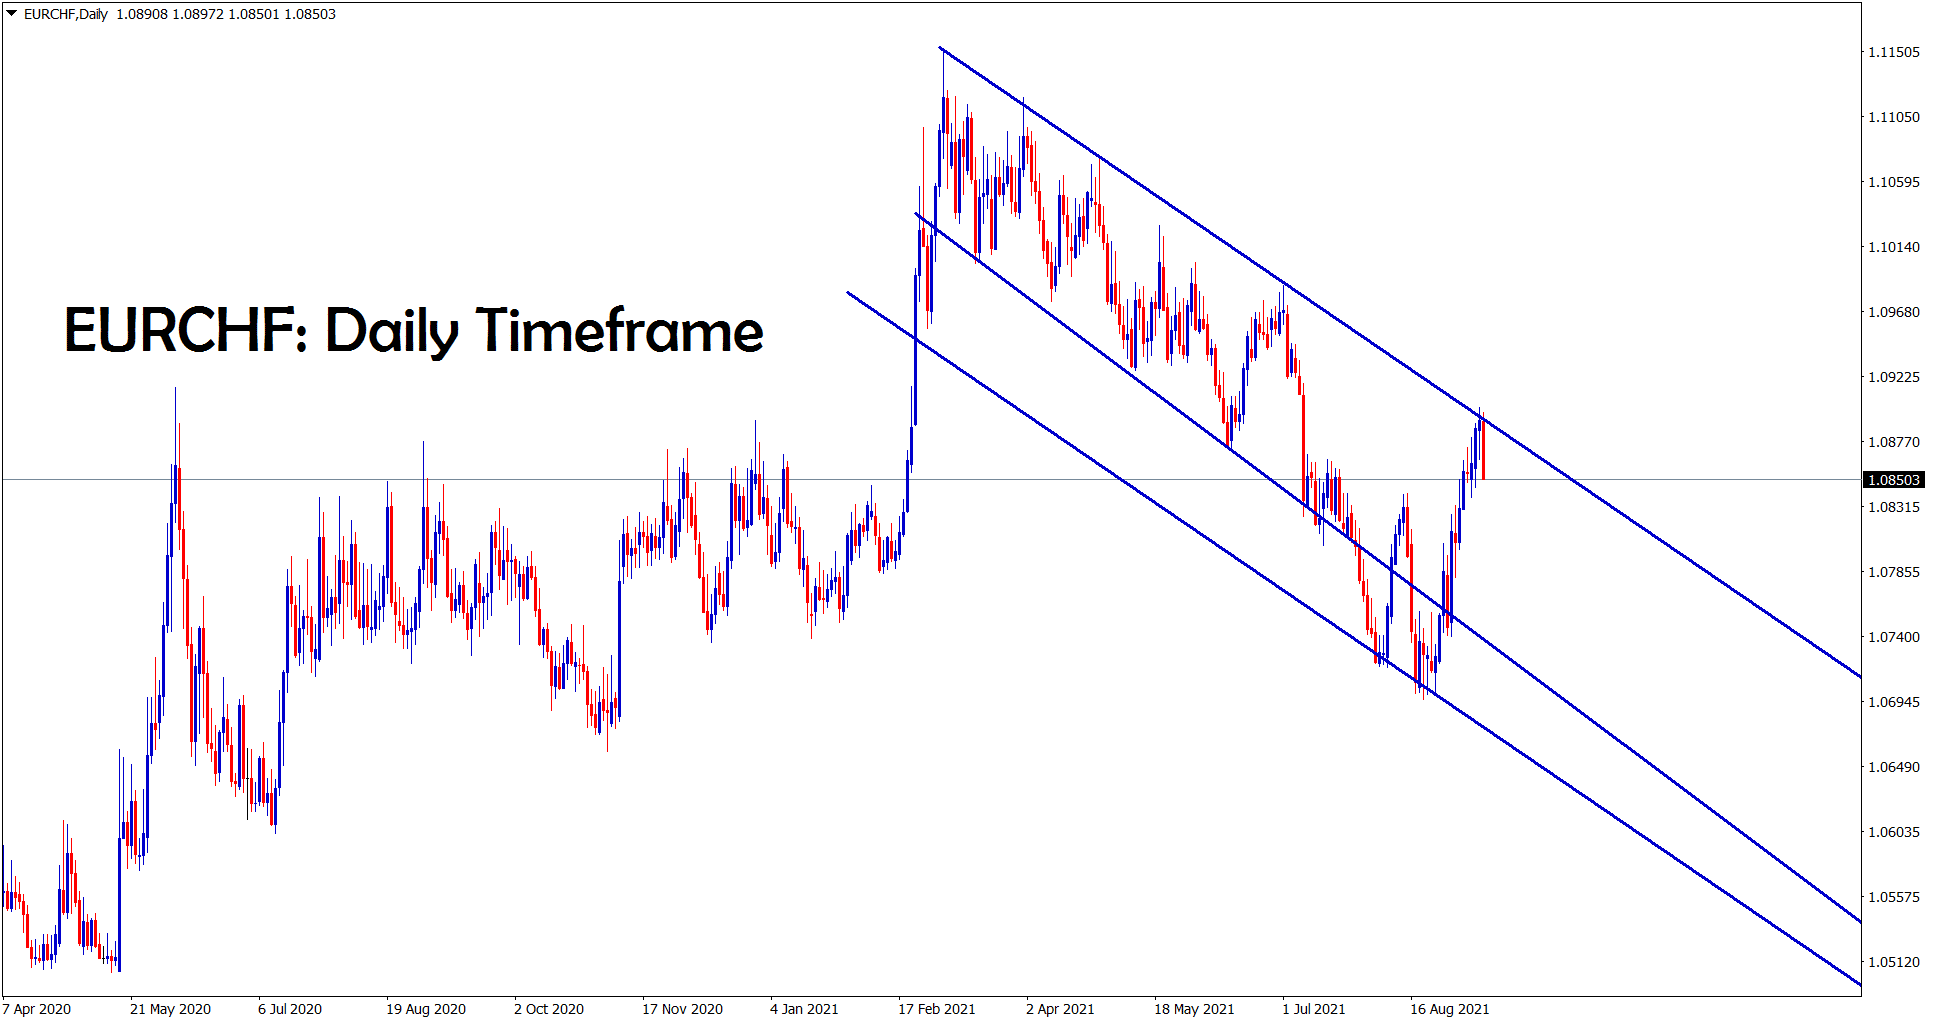 EURCHF is making a correction from the lower high of the dowtrend line